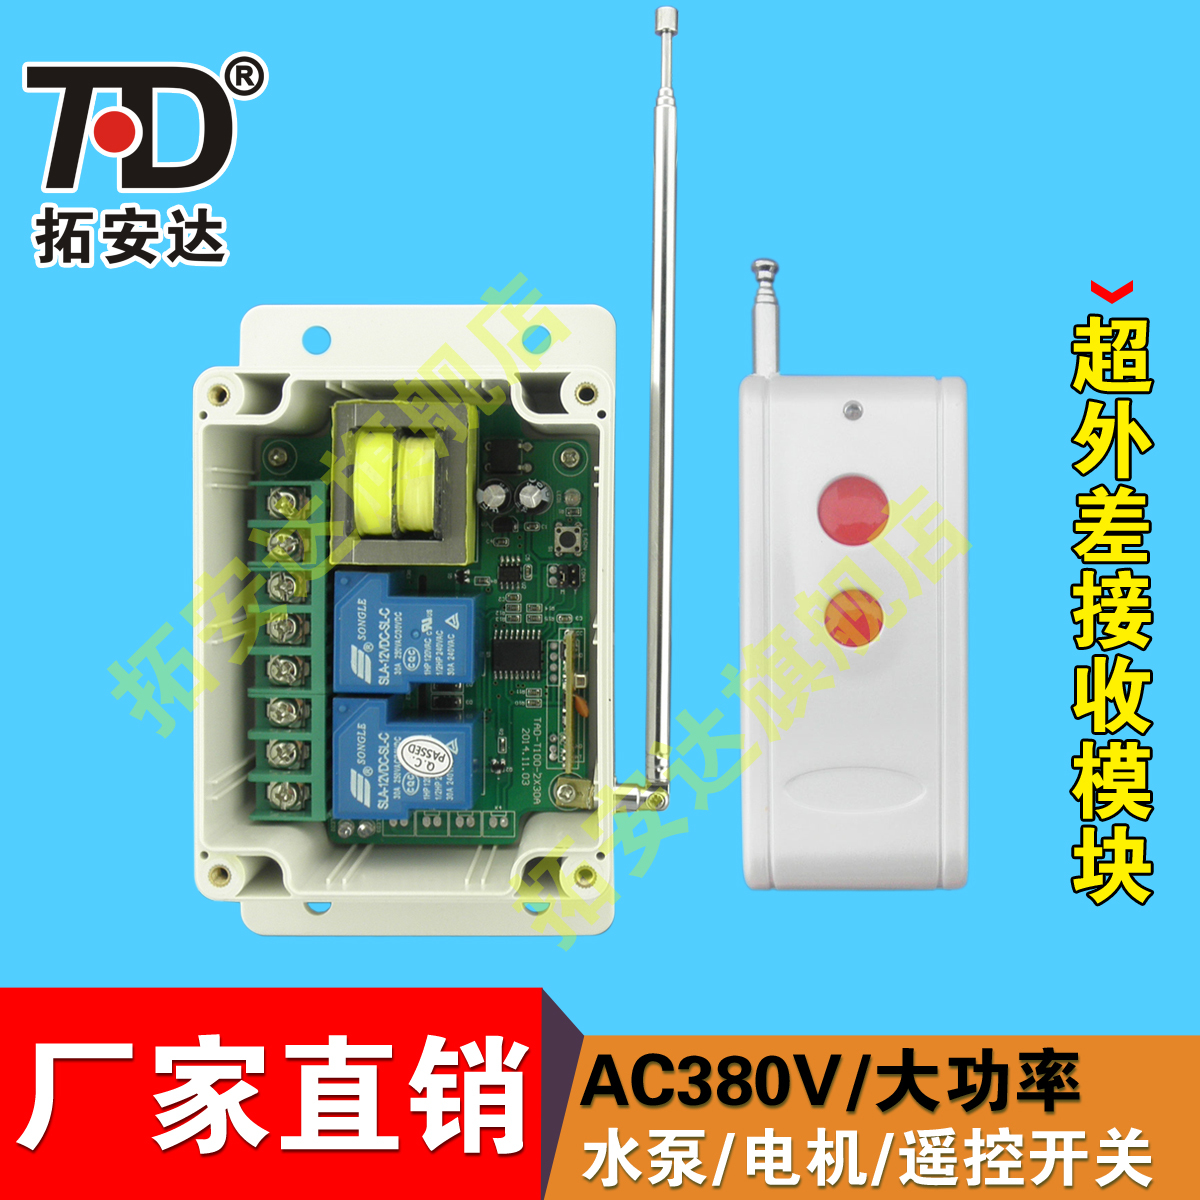 Anderson Brand Three-phase Wireless Remote Control Switch Two Road High-power Water Electric Machinery Shed Field SWITCH beroun hs650 10kw three phase 380v single phase 220v power remote control thermostat temperature control switch